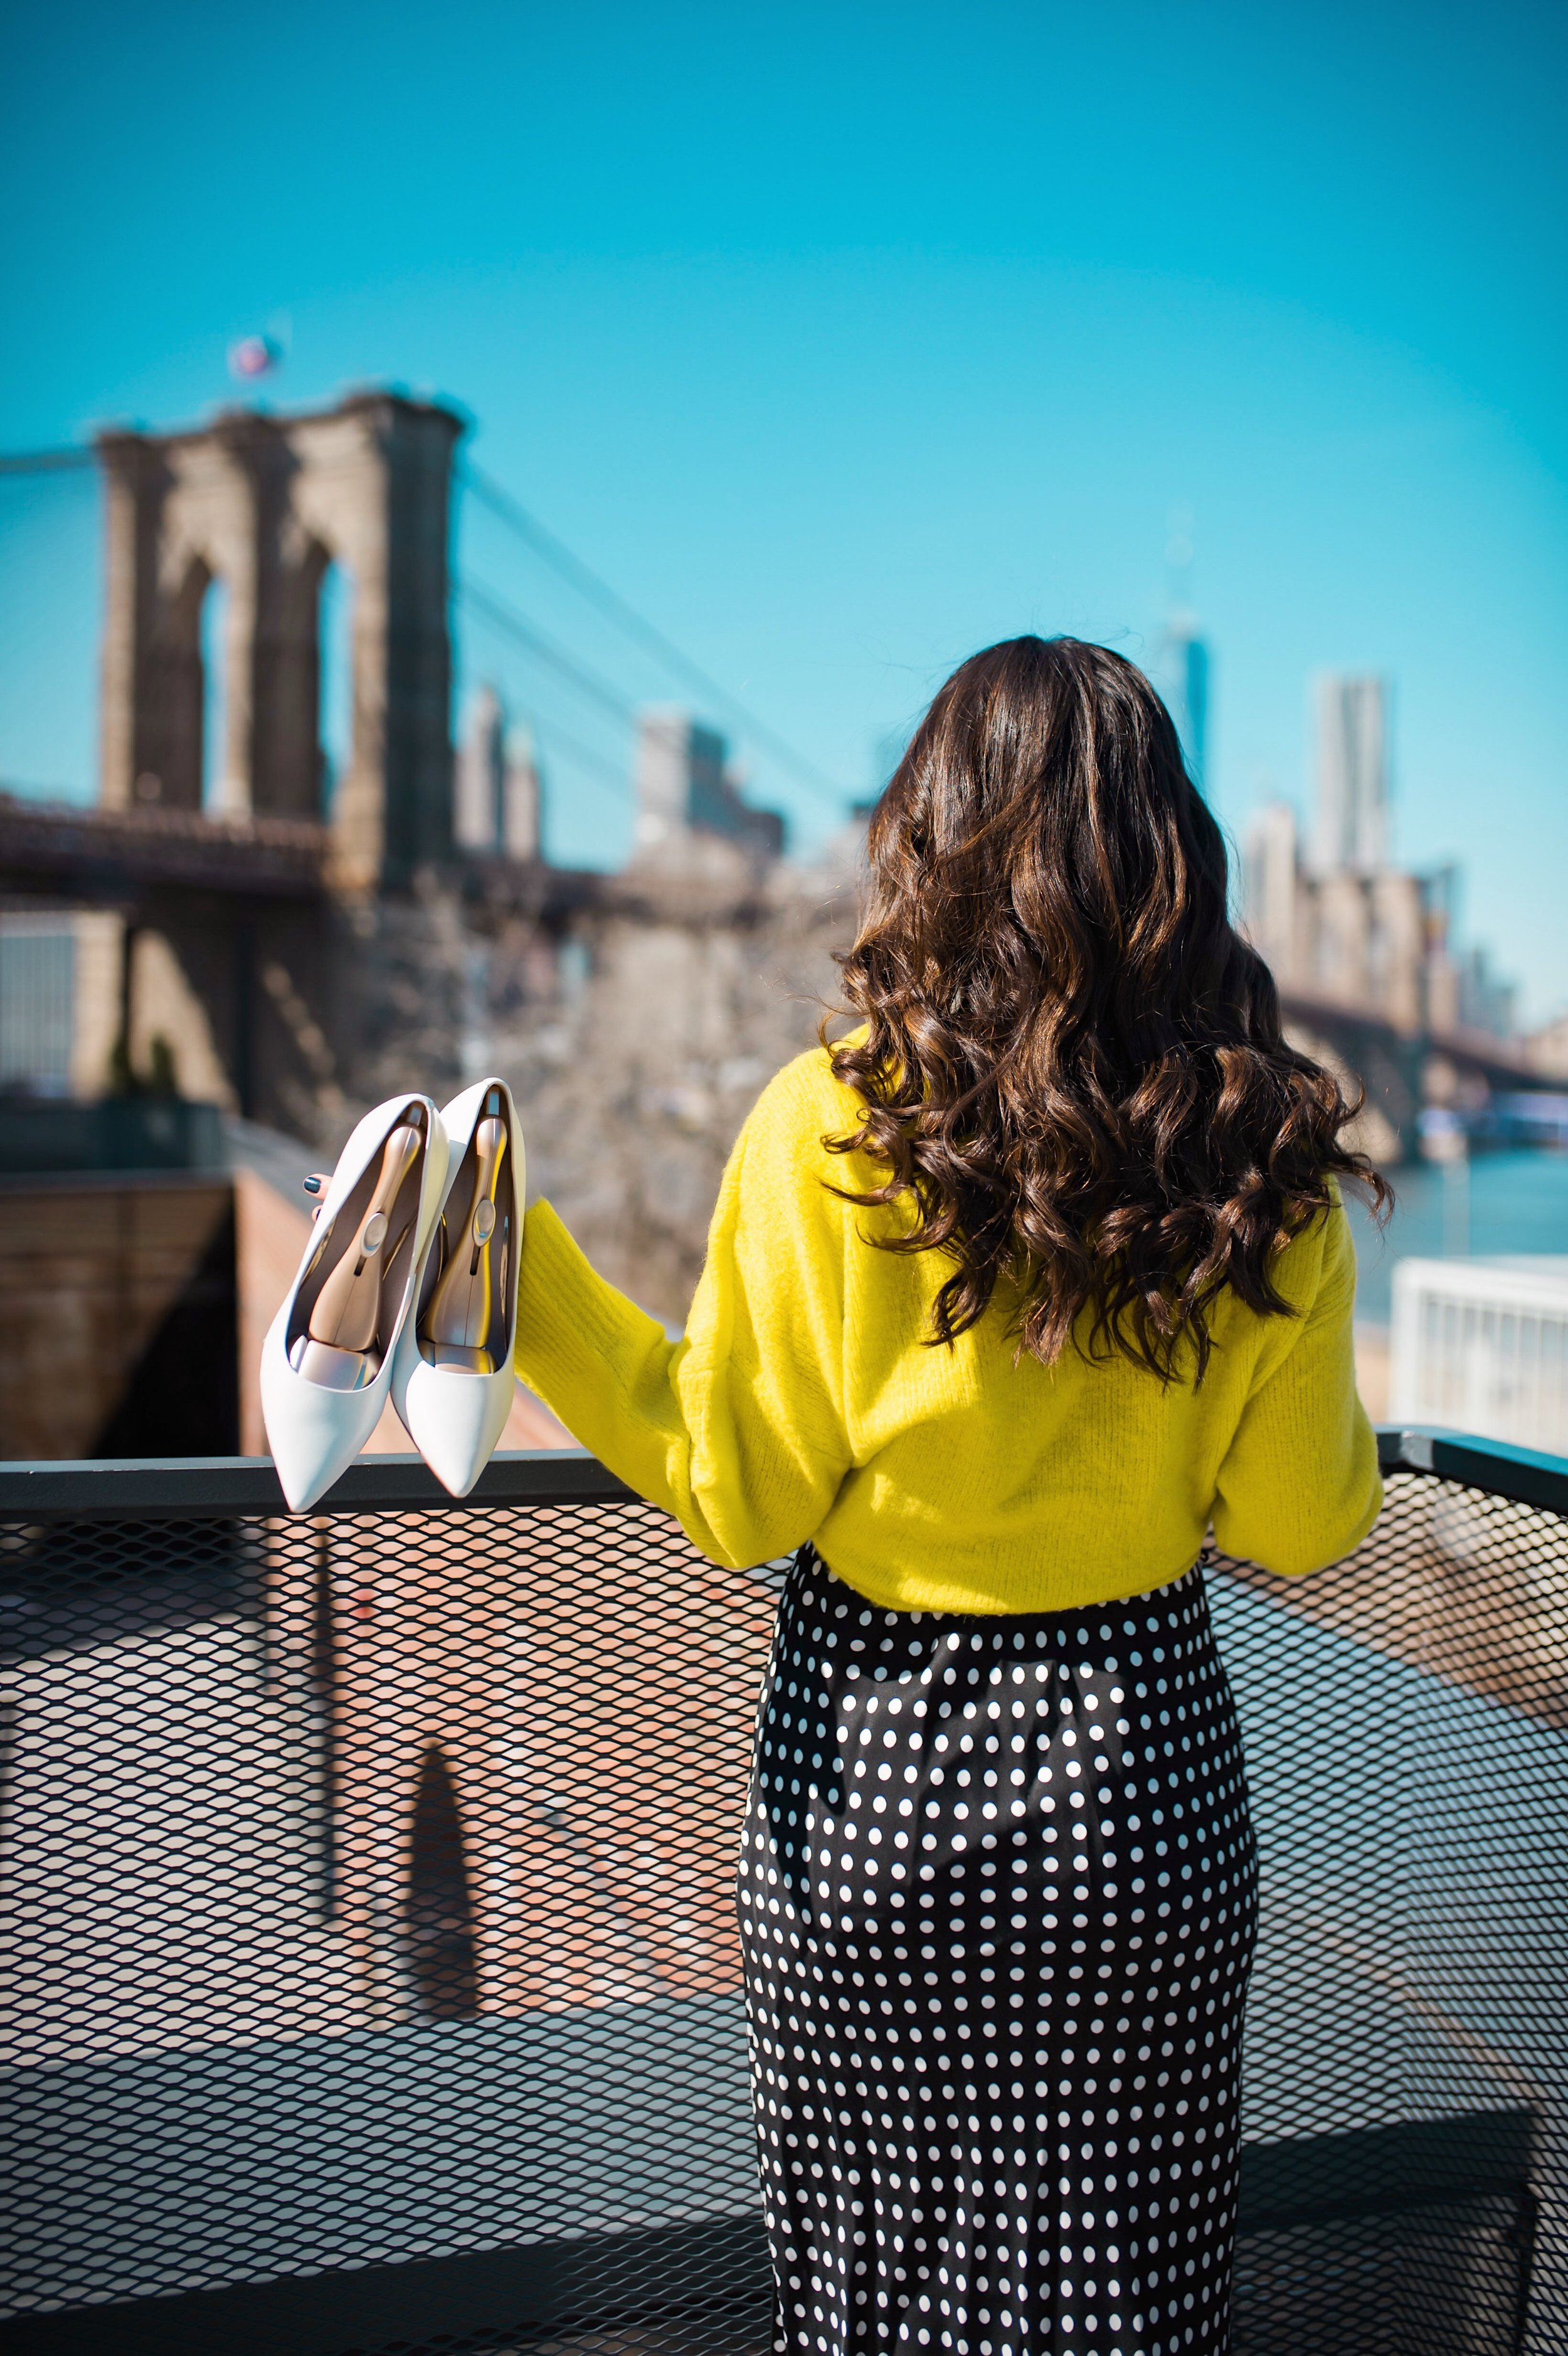 How I Wound Up With Boring White Dishes Navy Polka Dot Dress Neon Yellow Knotted Sweater Esther Santer Fashion Blog NYC Street Style Blogger Outfit OOTD Trendy Shopping Girl What How To Wear White Heels Photoshoot Laurel Creative Dumbo Brooklyn Bridge.JPG